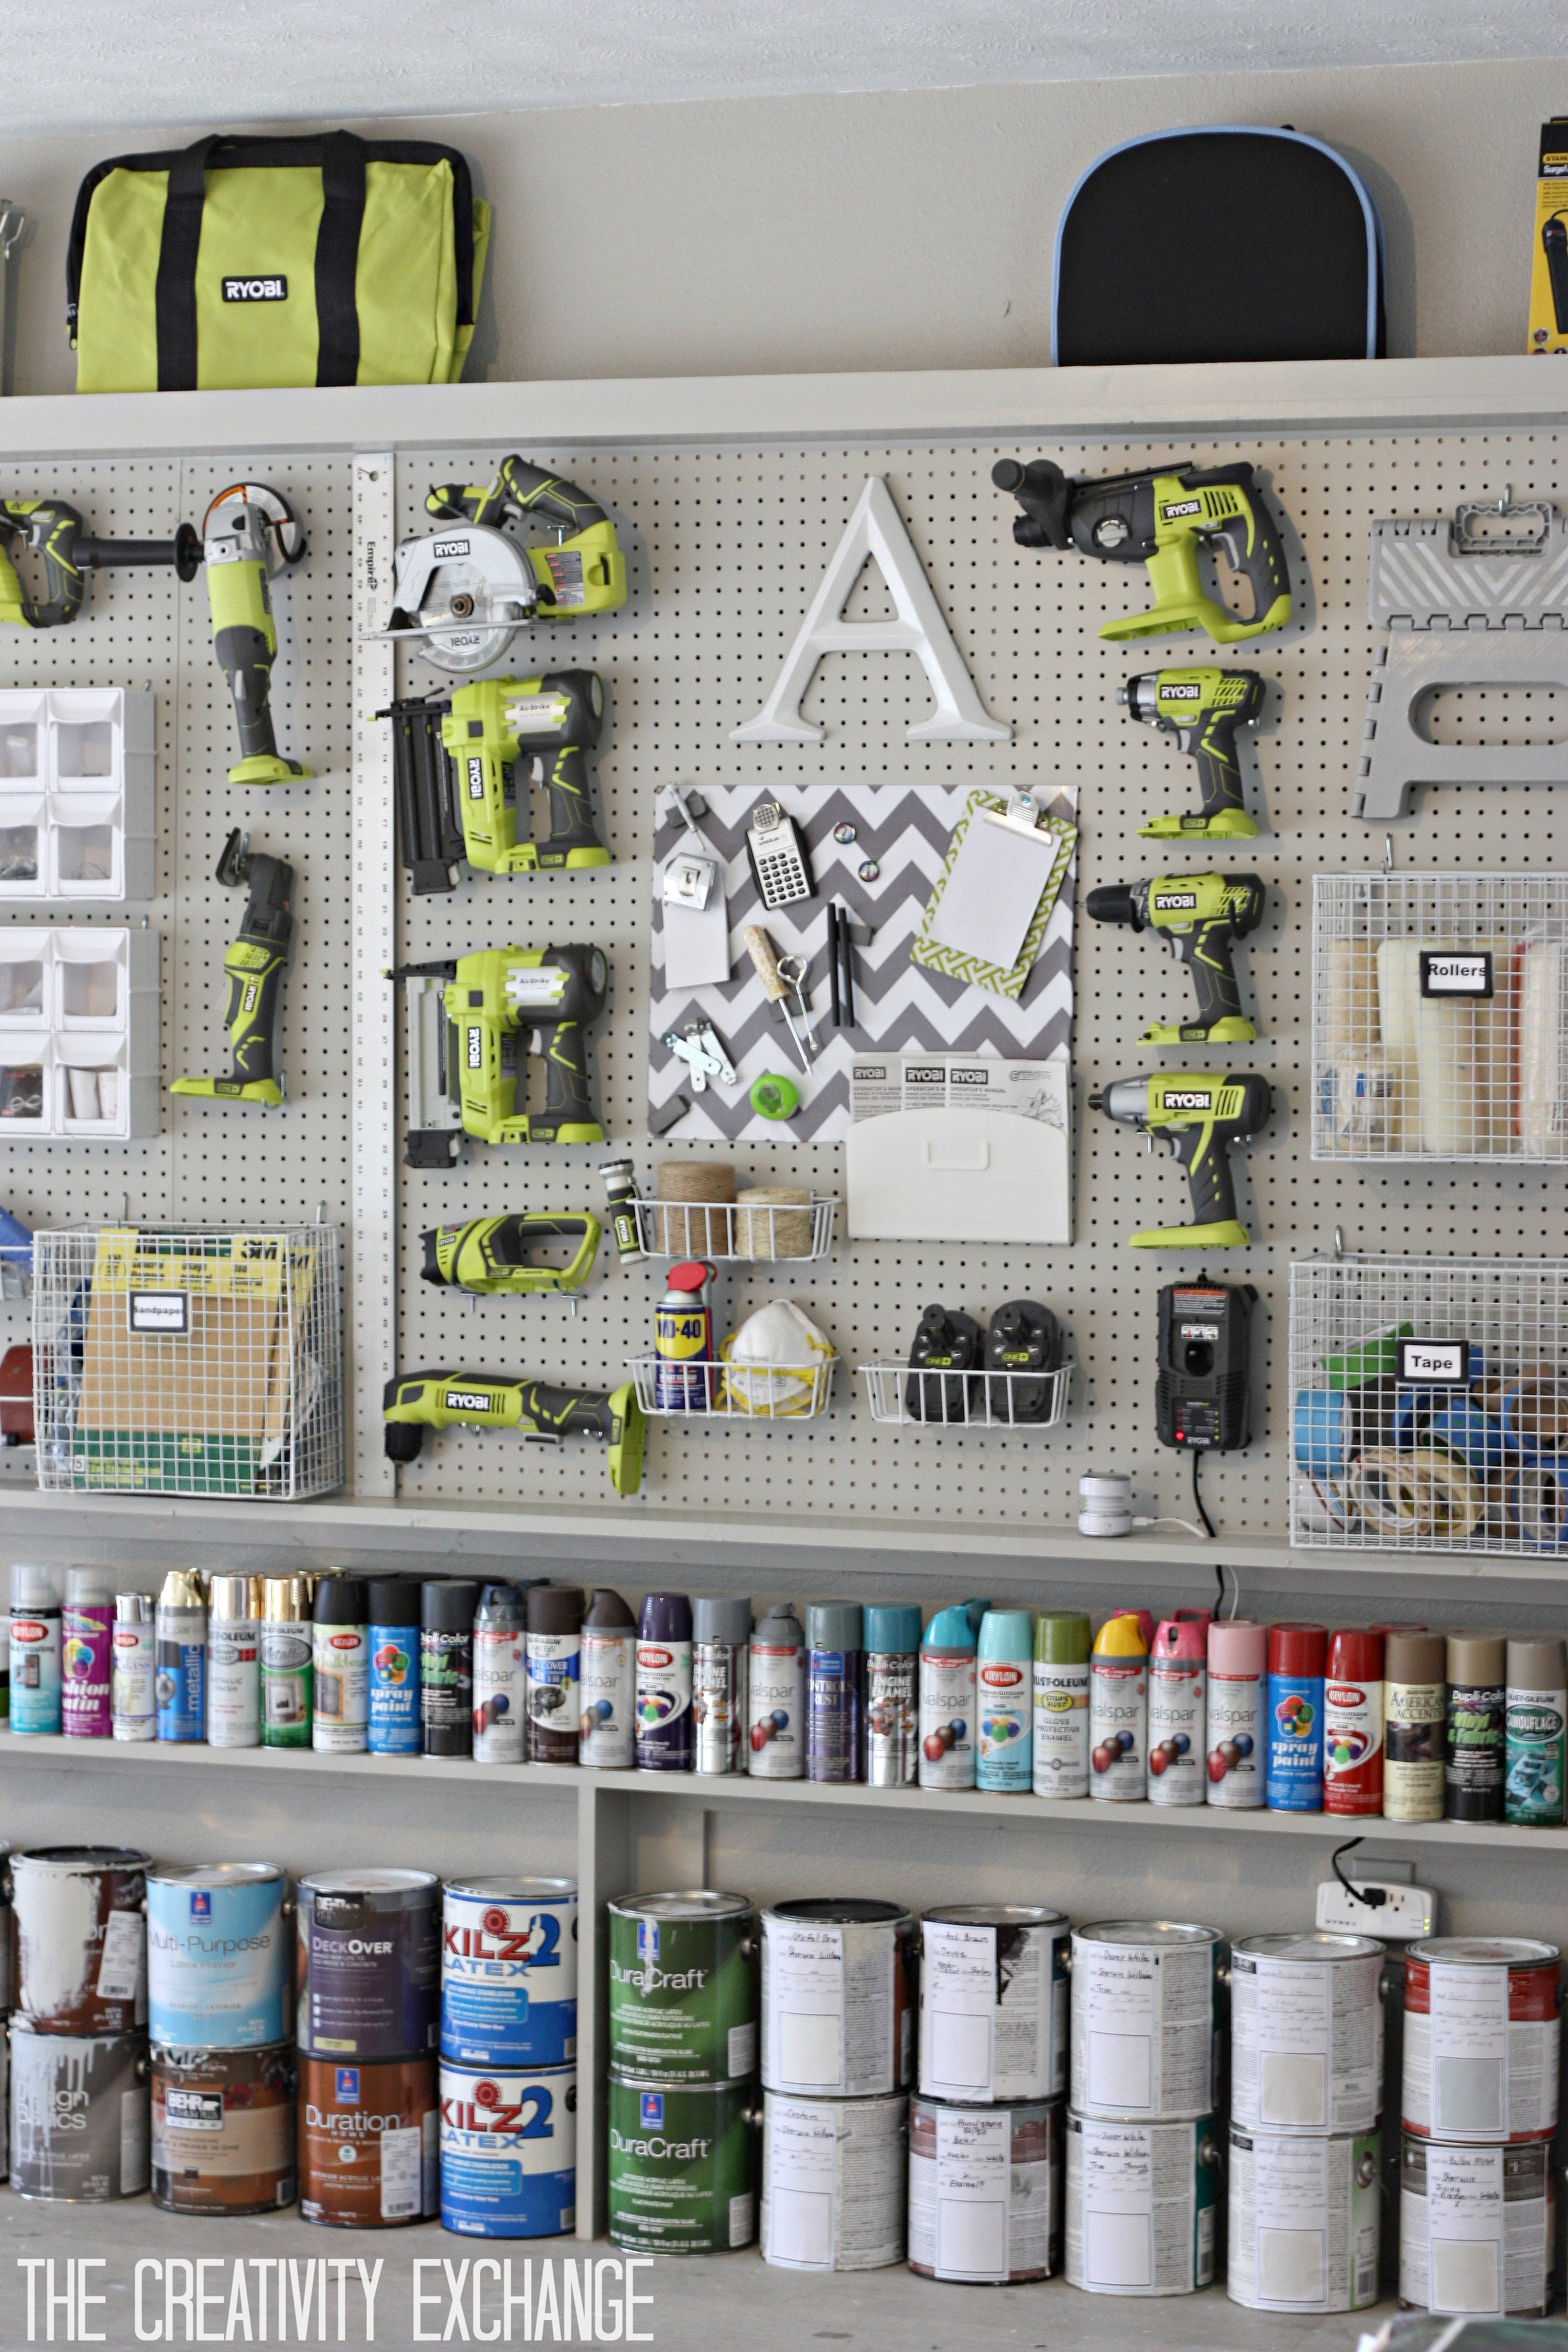 Organizing the garage with diy pegboard storage wall Spray paint supplies